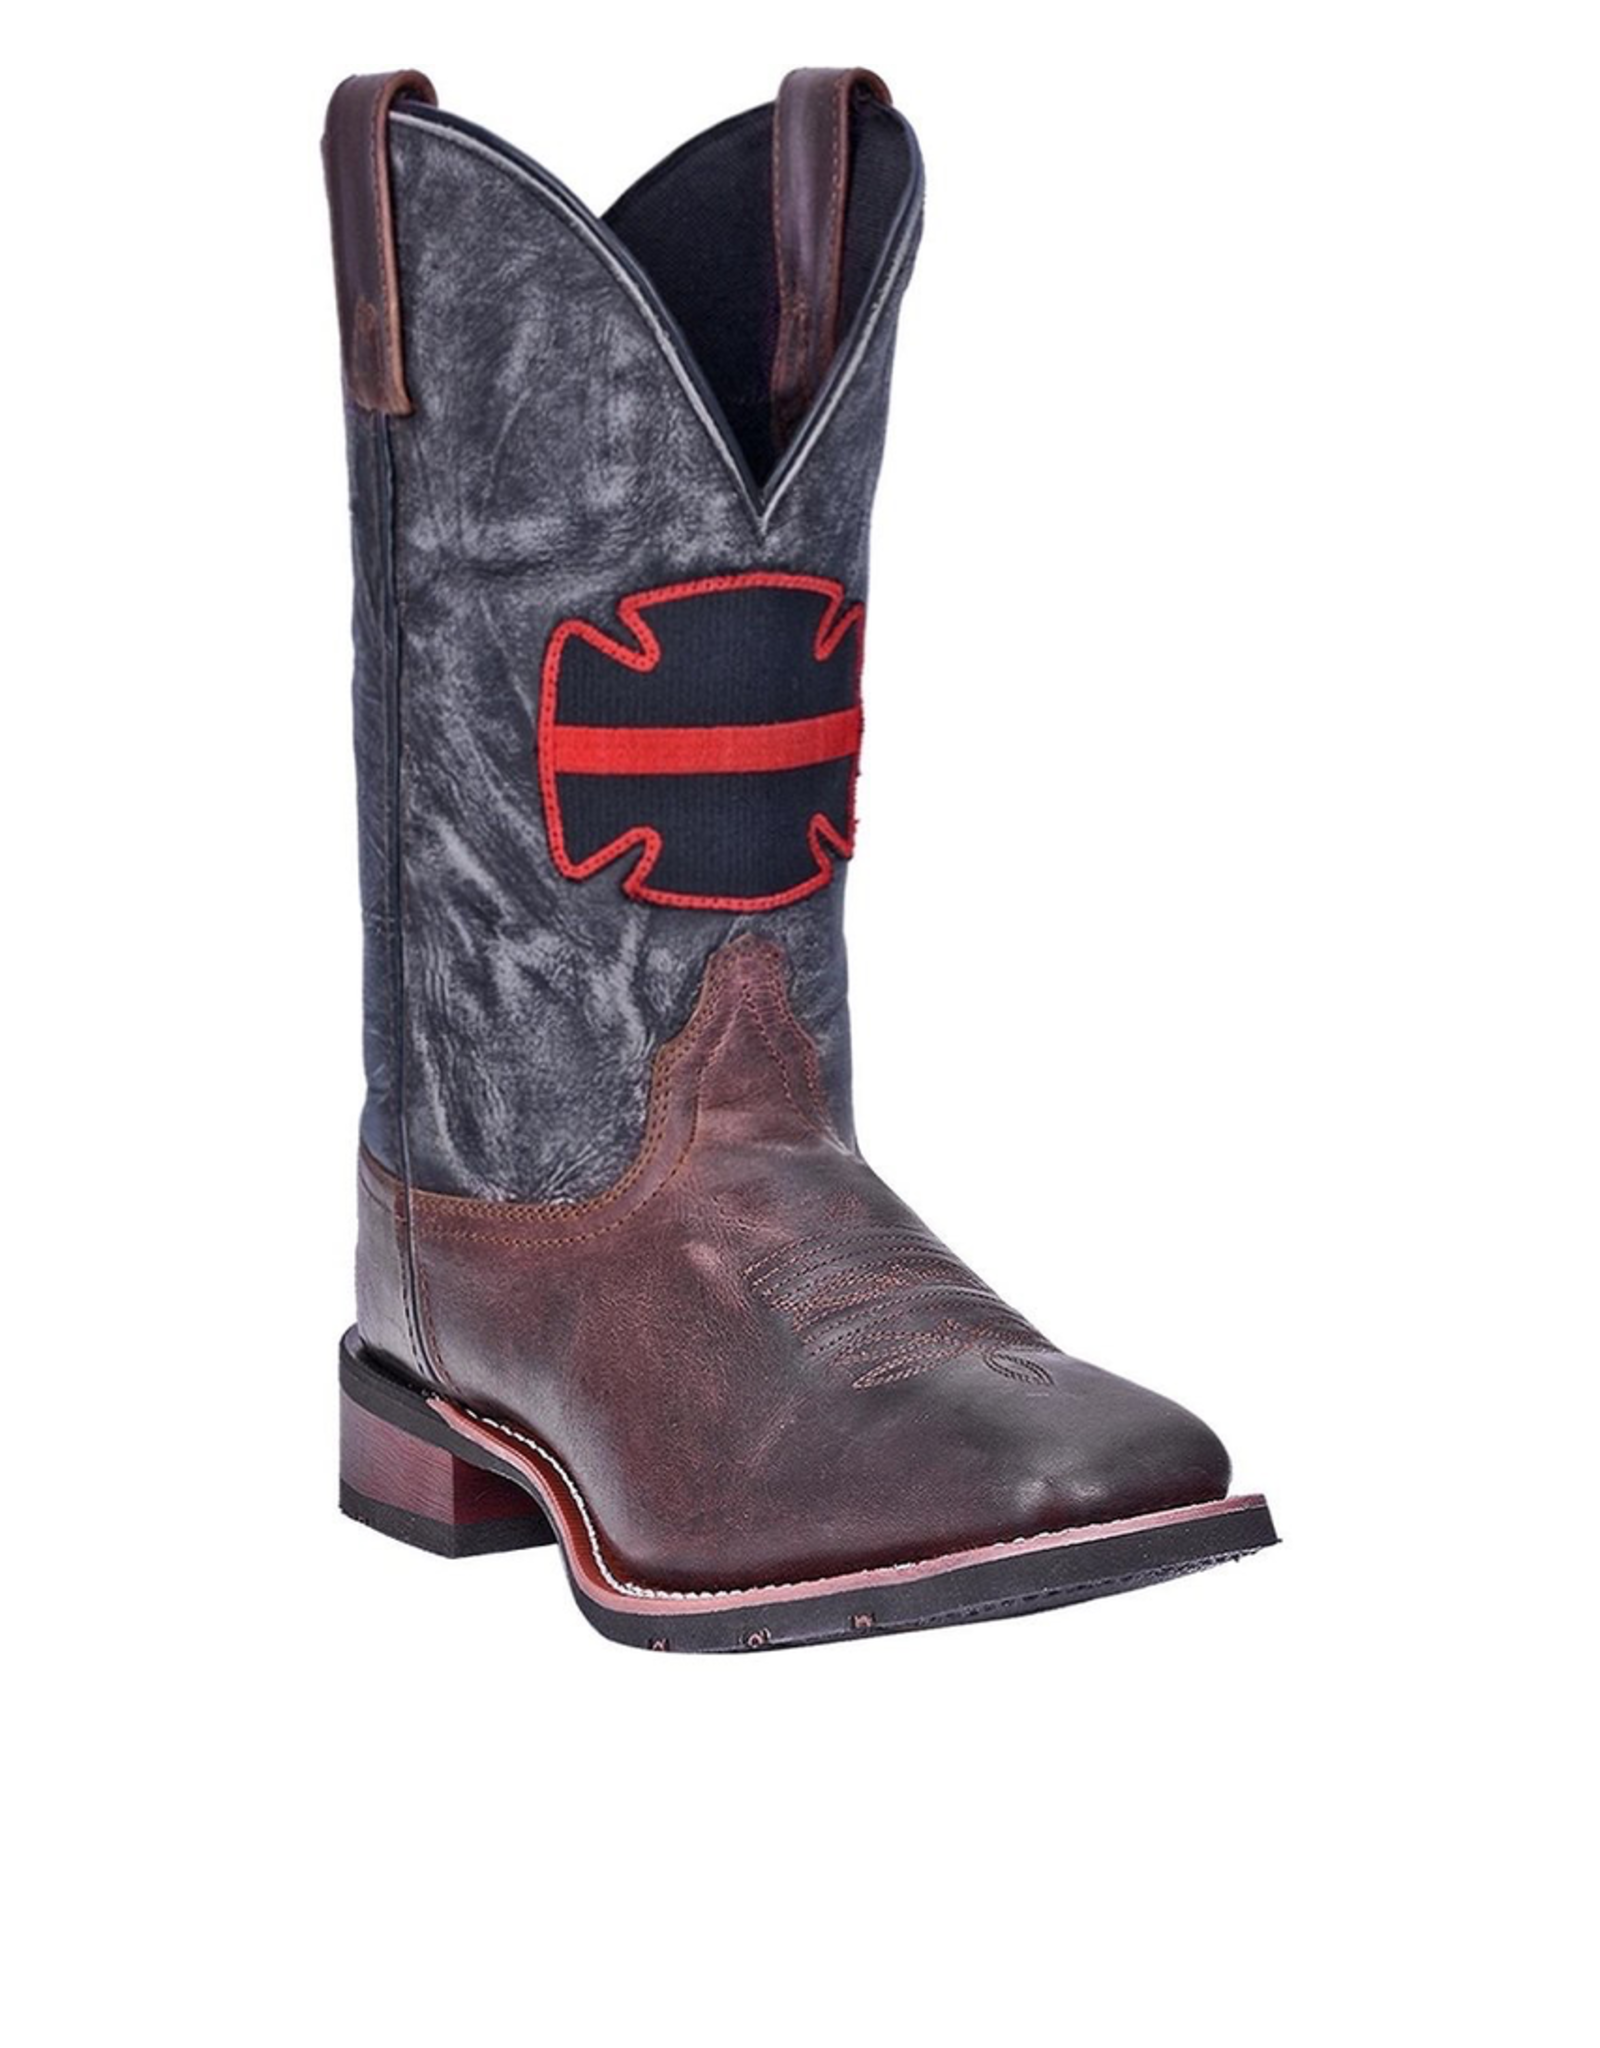 Boots-Men LAREDO 7875 Back The Red